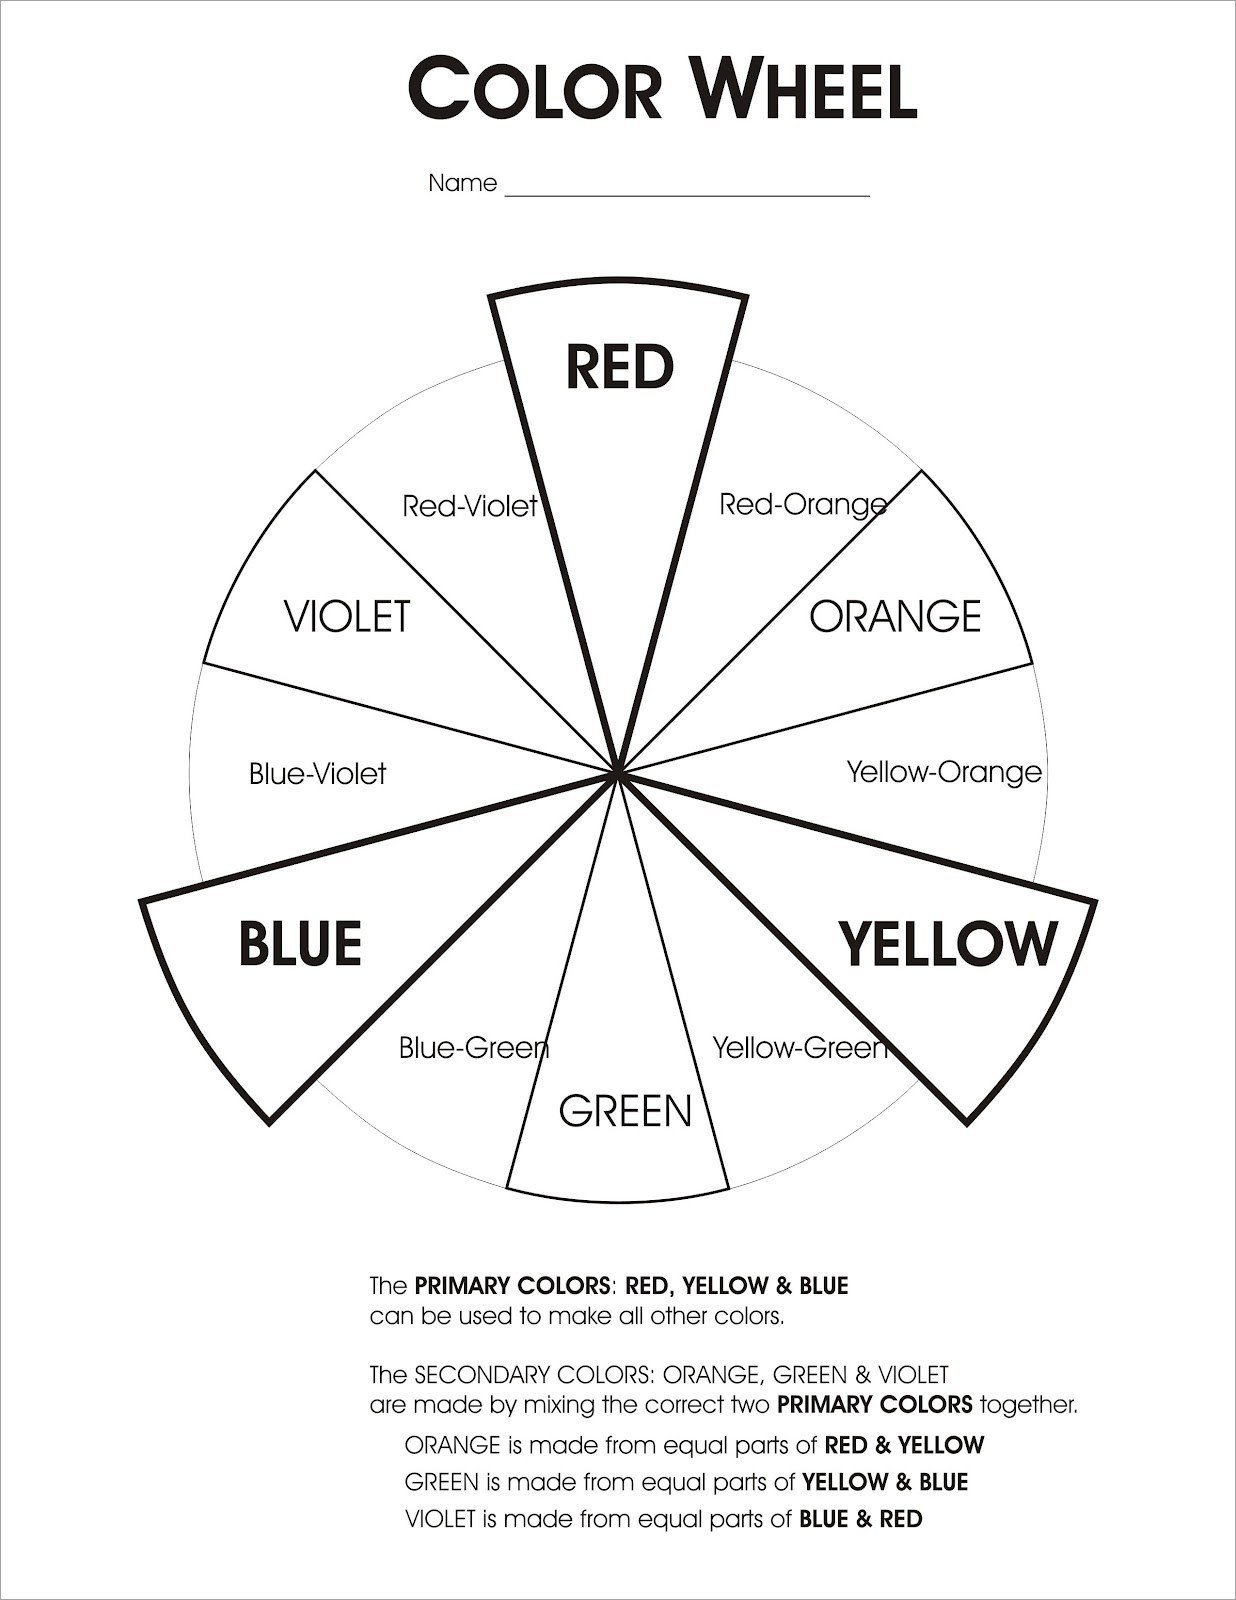 Color Wheel Worksheet for Elementary Printable Color Wheel Worksheet – Jowo